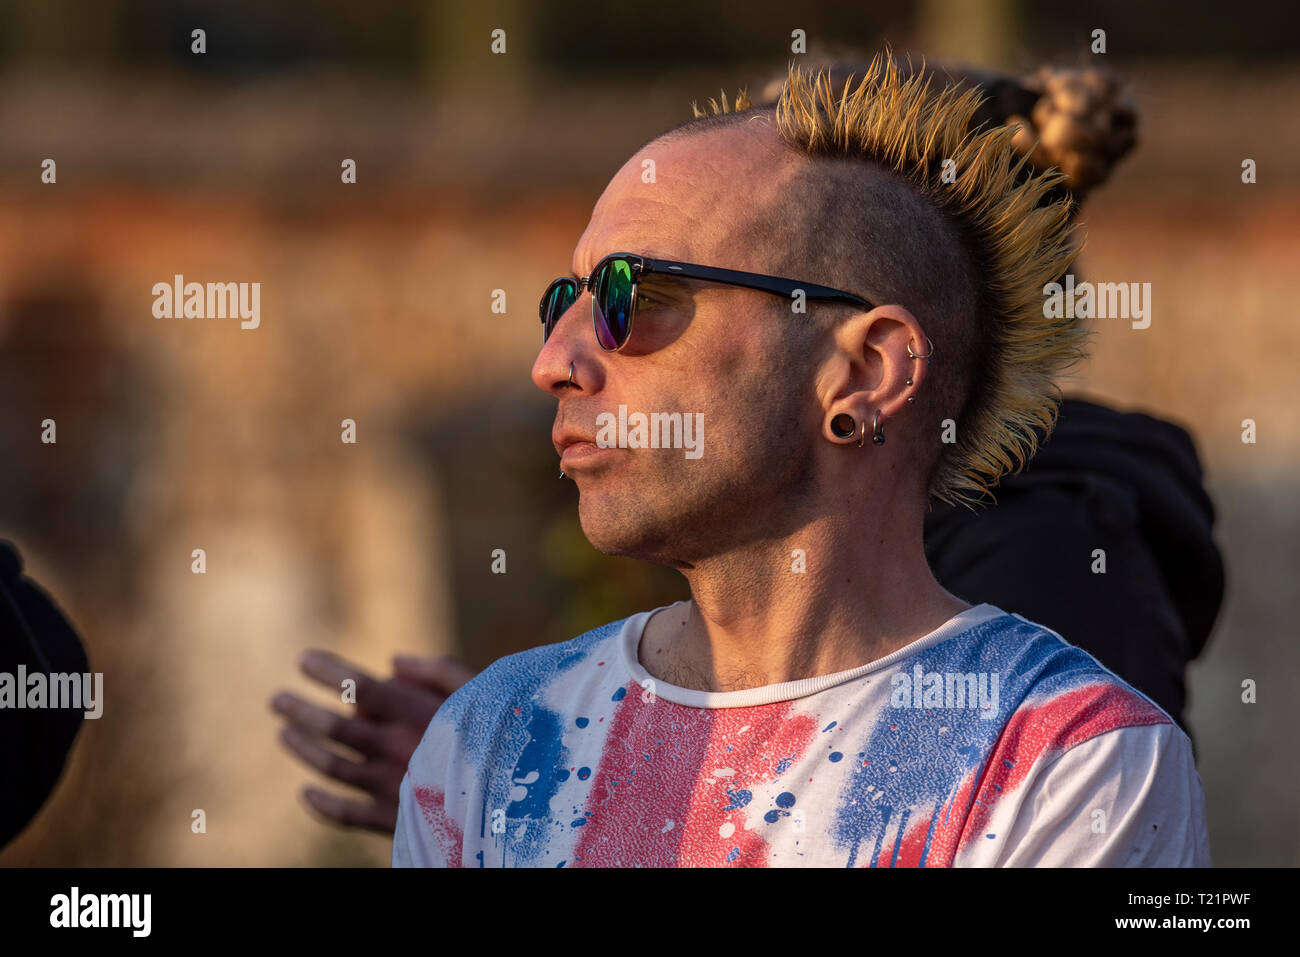 Braintree, Essex, United Kingdom. 29 March 2019. A large crowd gathered in Braintree, Essex for the funeral of Prodigy singer Keith Flint. Credit: Peter Manning/Alamy Live News Stock Photo